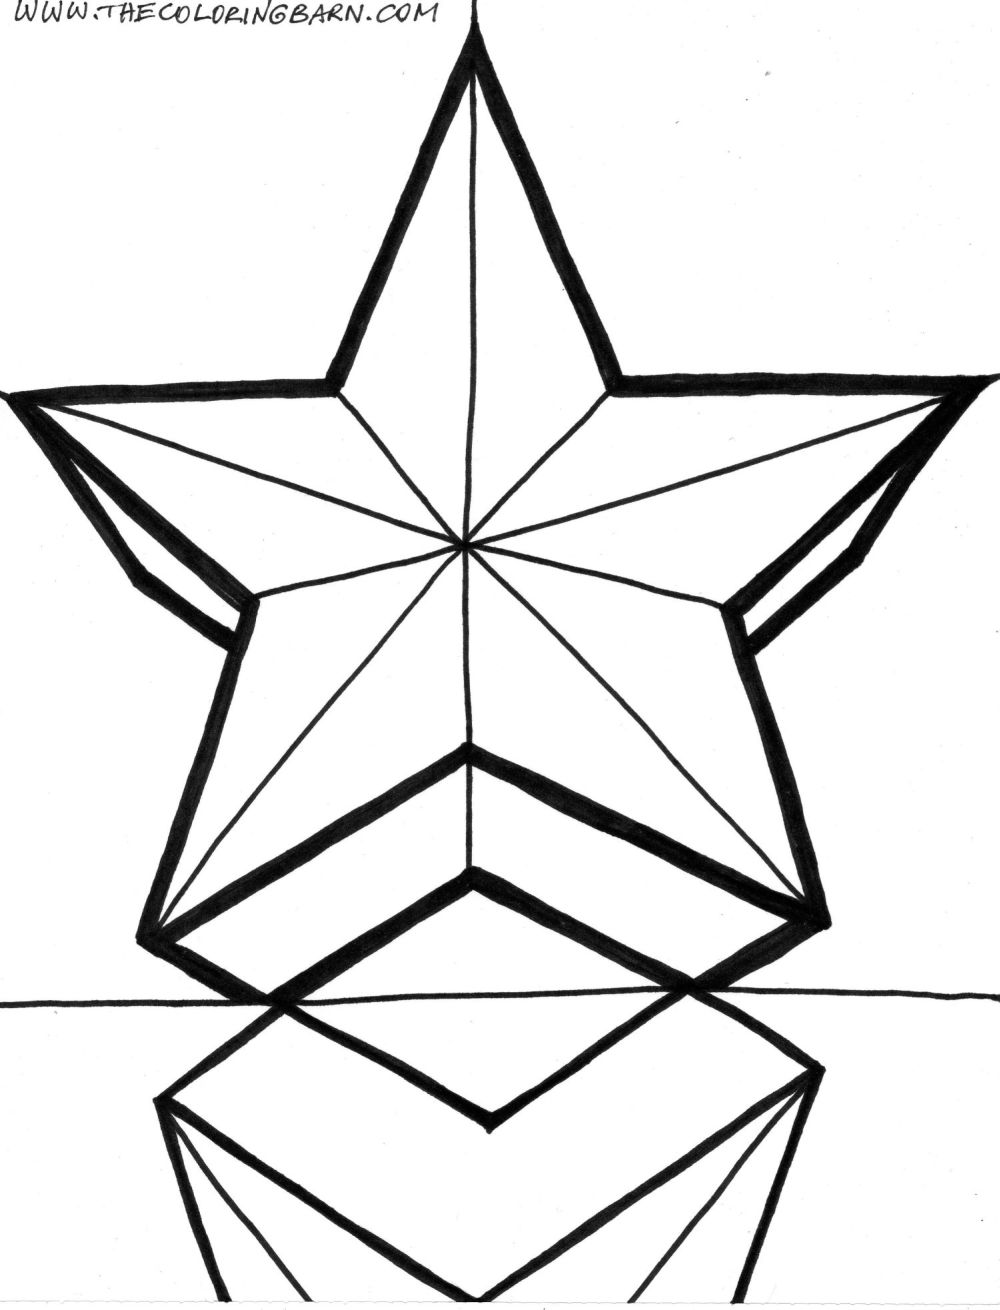 stars coloring page free printable star coloring pages page coloring stars 1 1